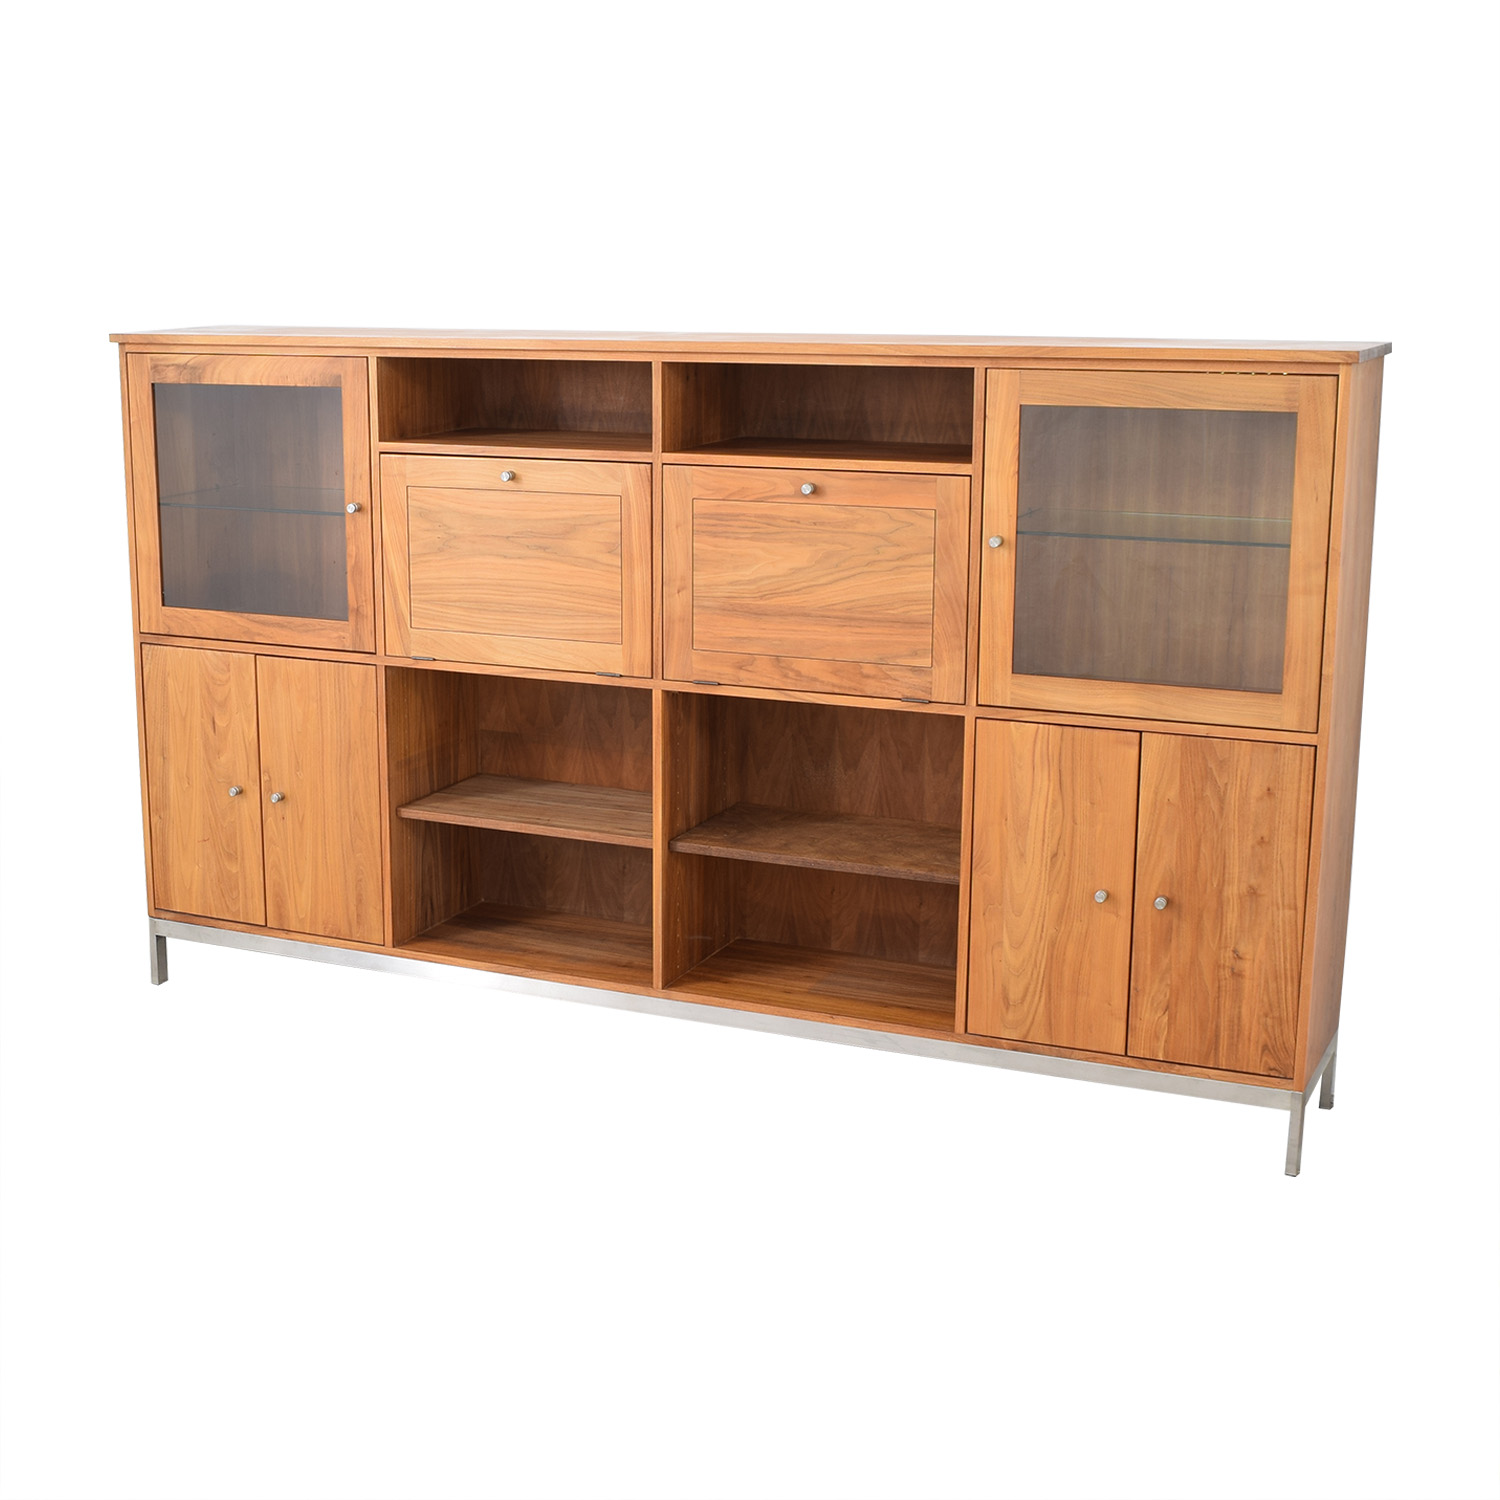 shop Room & Board Media Wall Unit Room & Board Storage